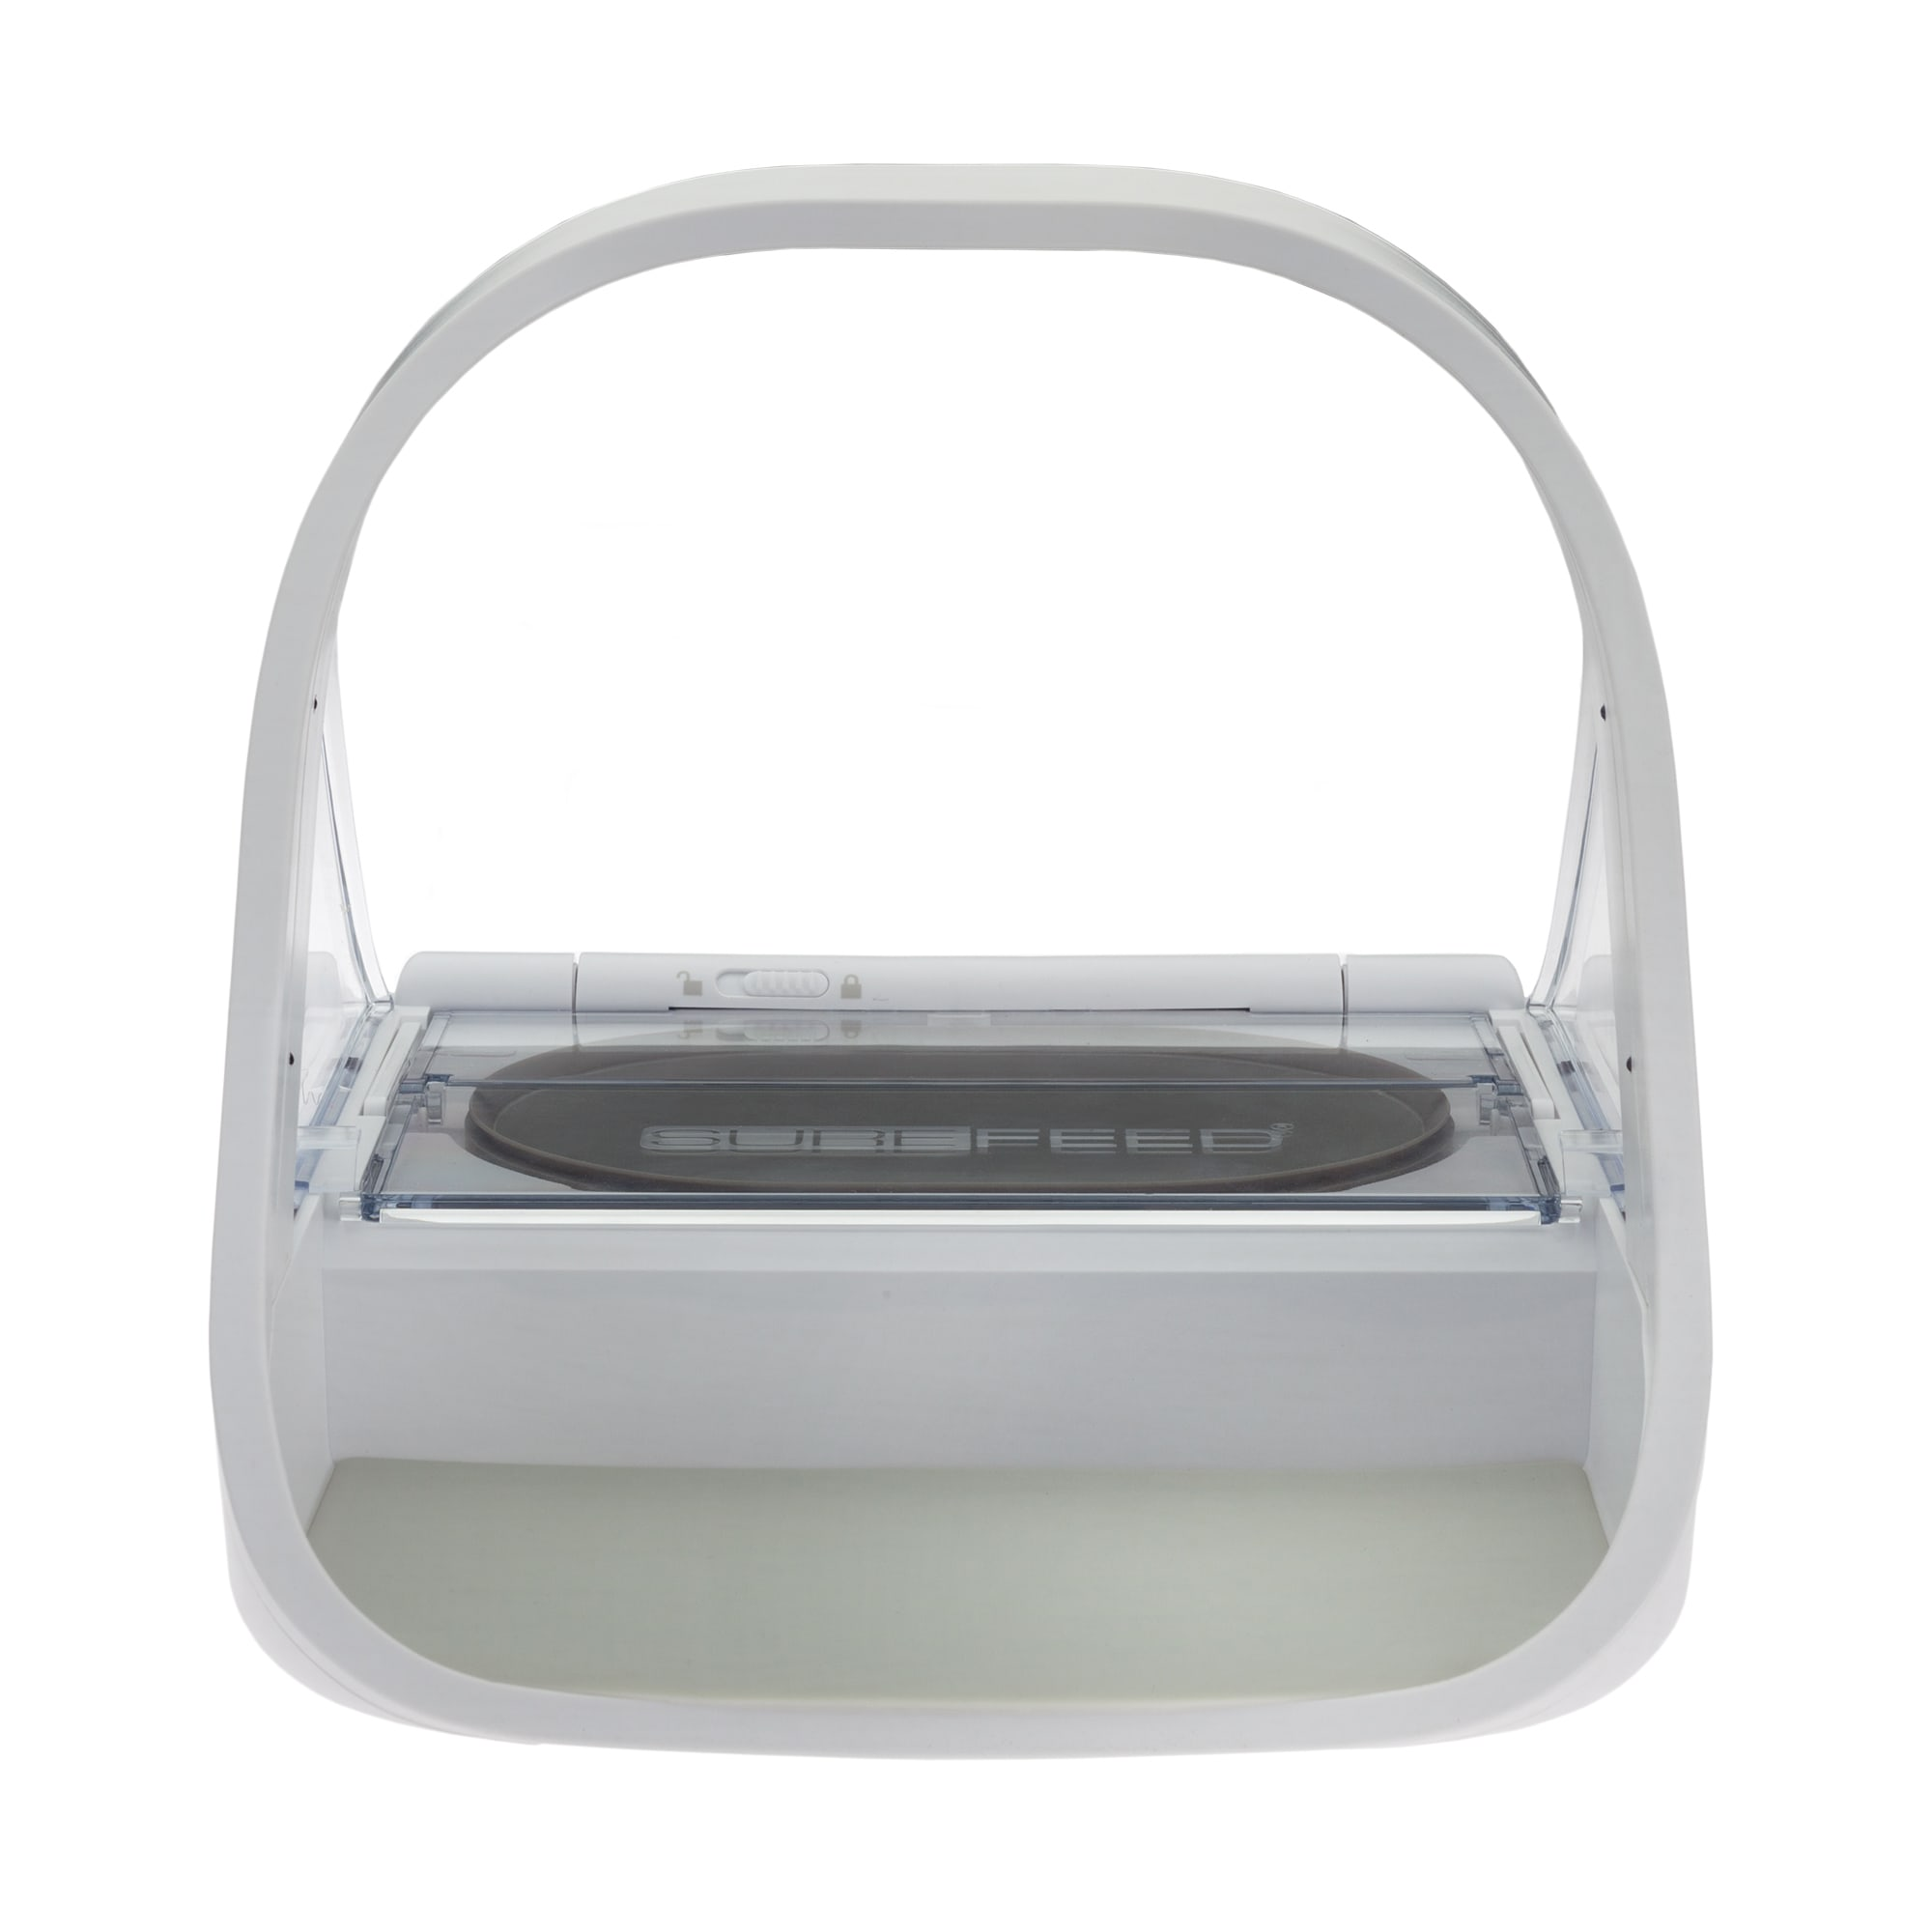 Sureflap Microchip Pet Feeder Petco